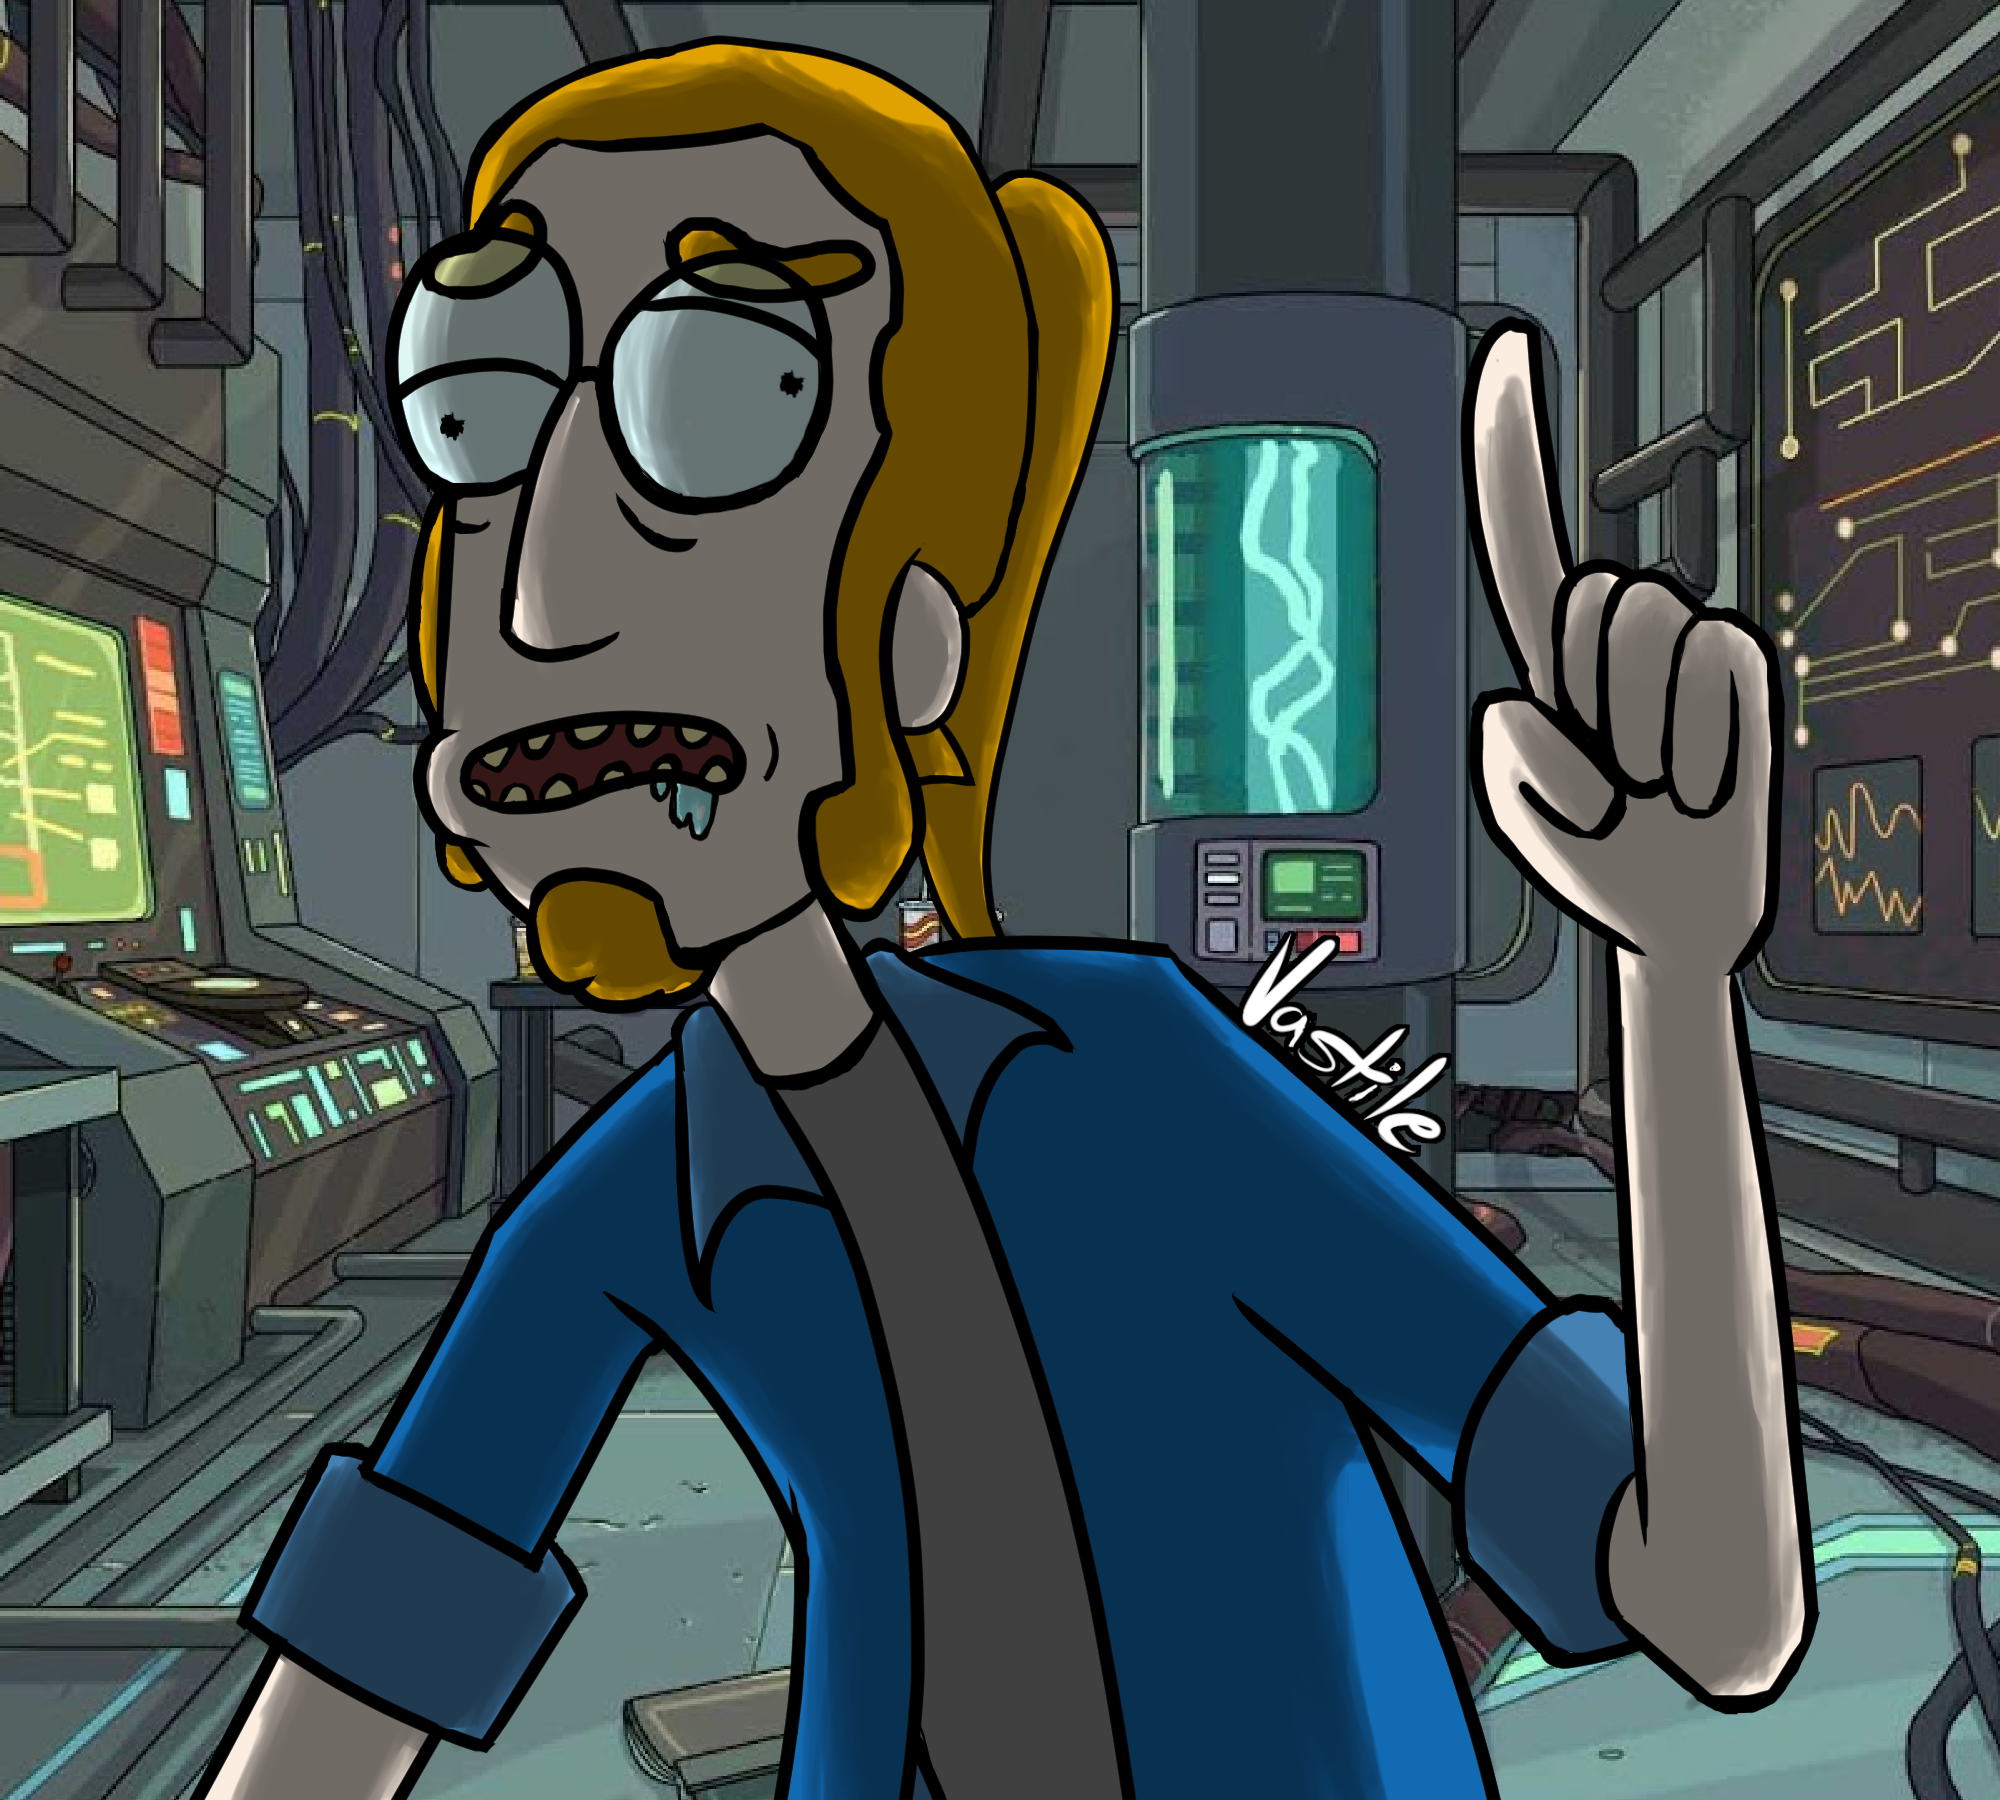 Self-Portrait in Rick and Morty Style